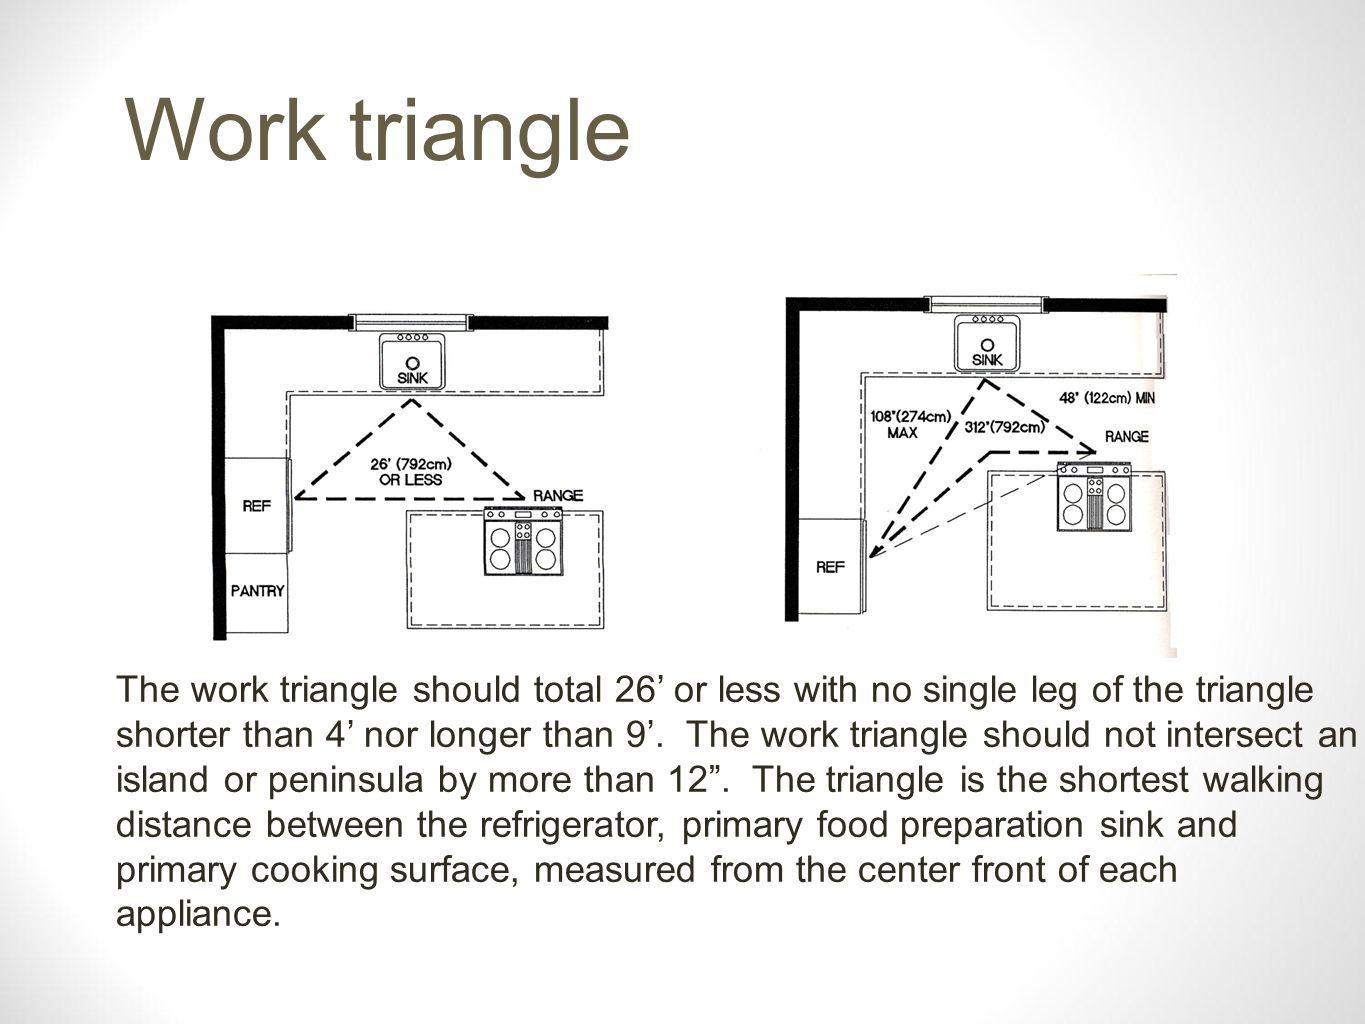 The work triangle should total 26 or less with no single leg of the triangle shorter than 4 nor longer than 9.